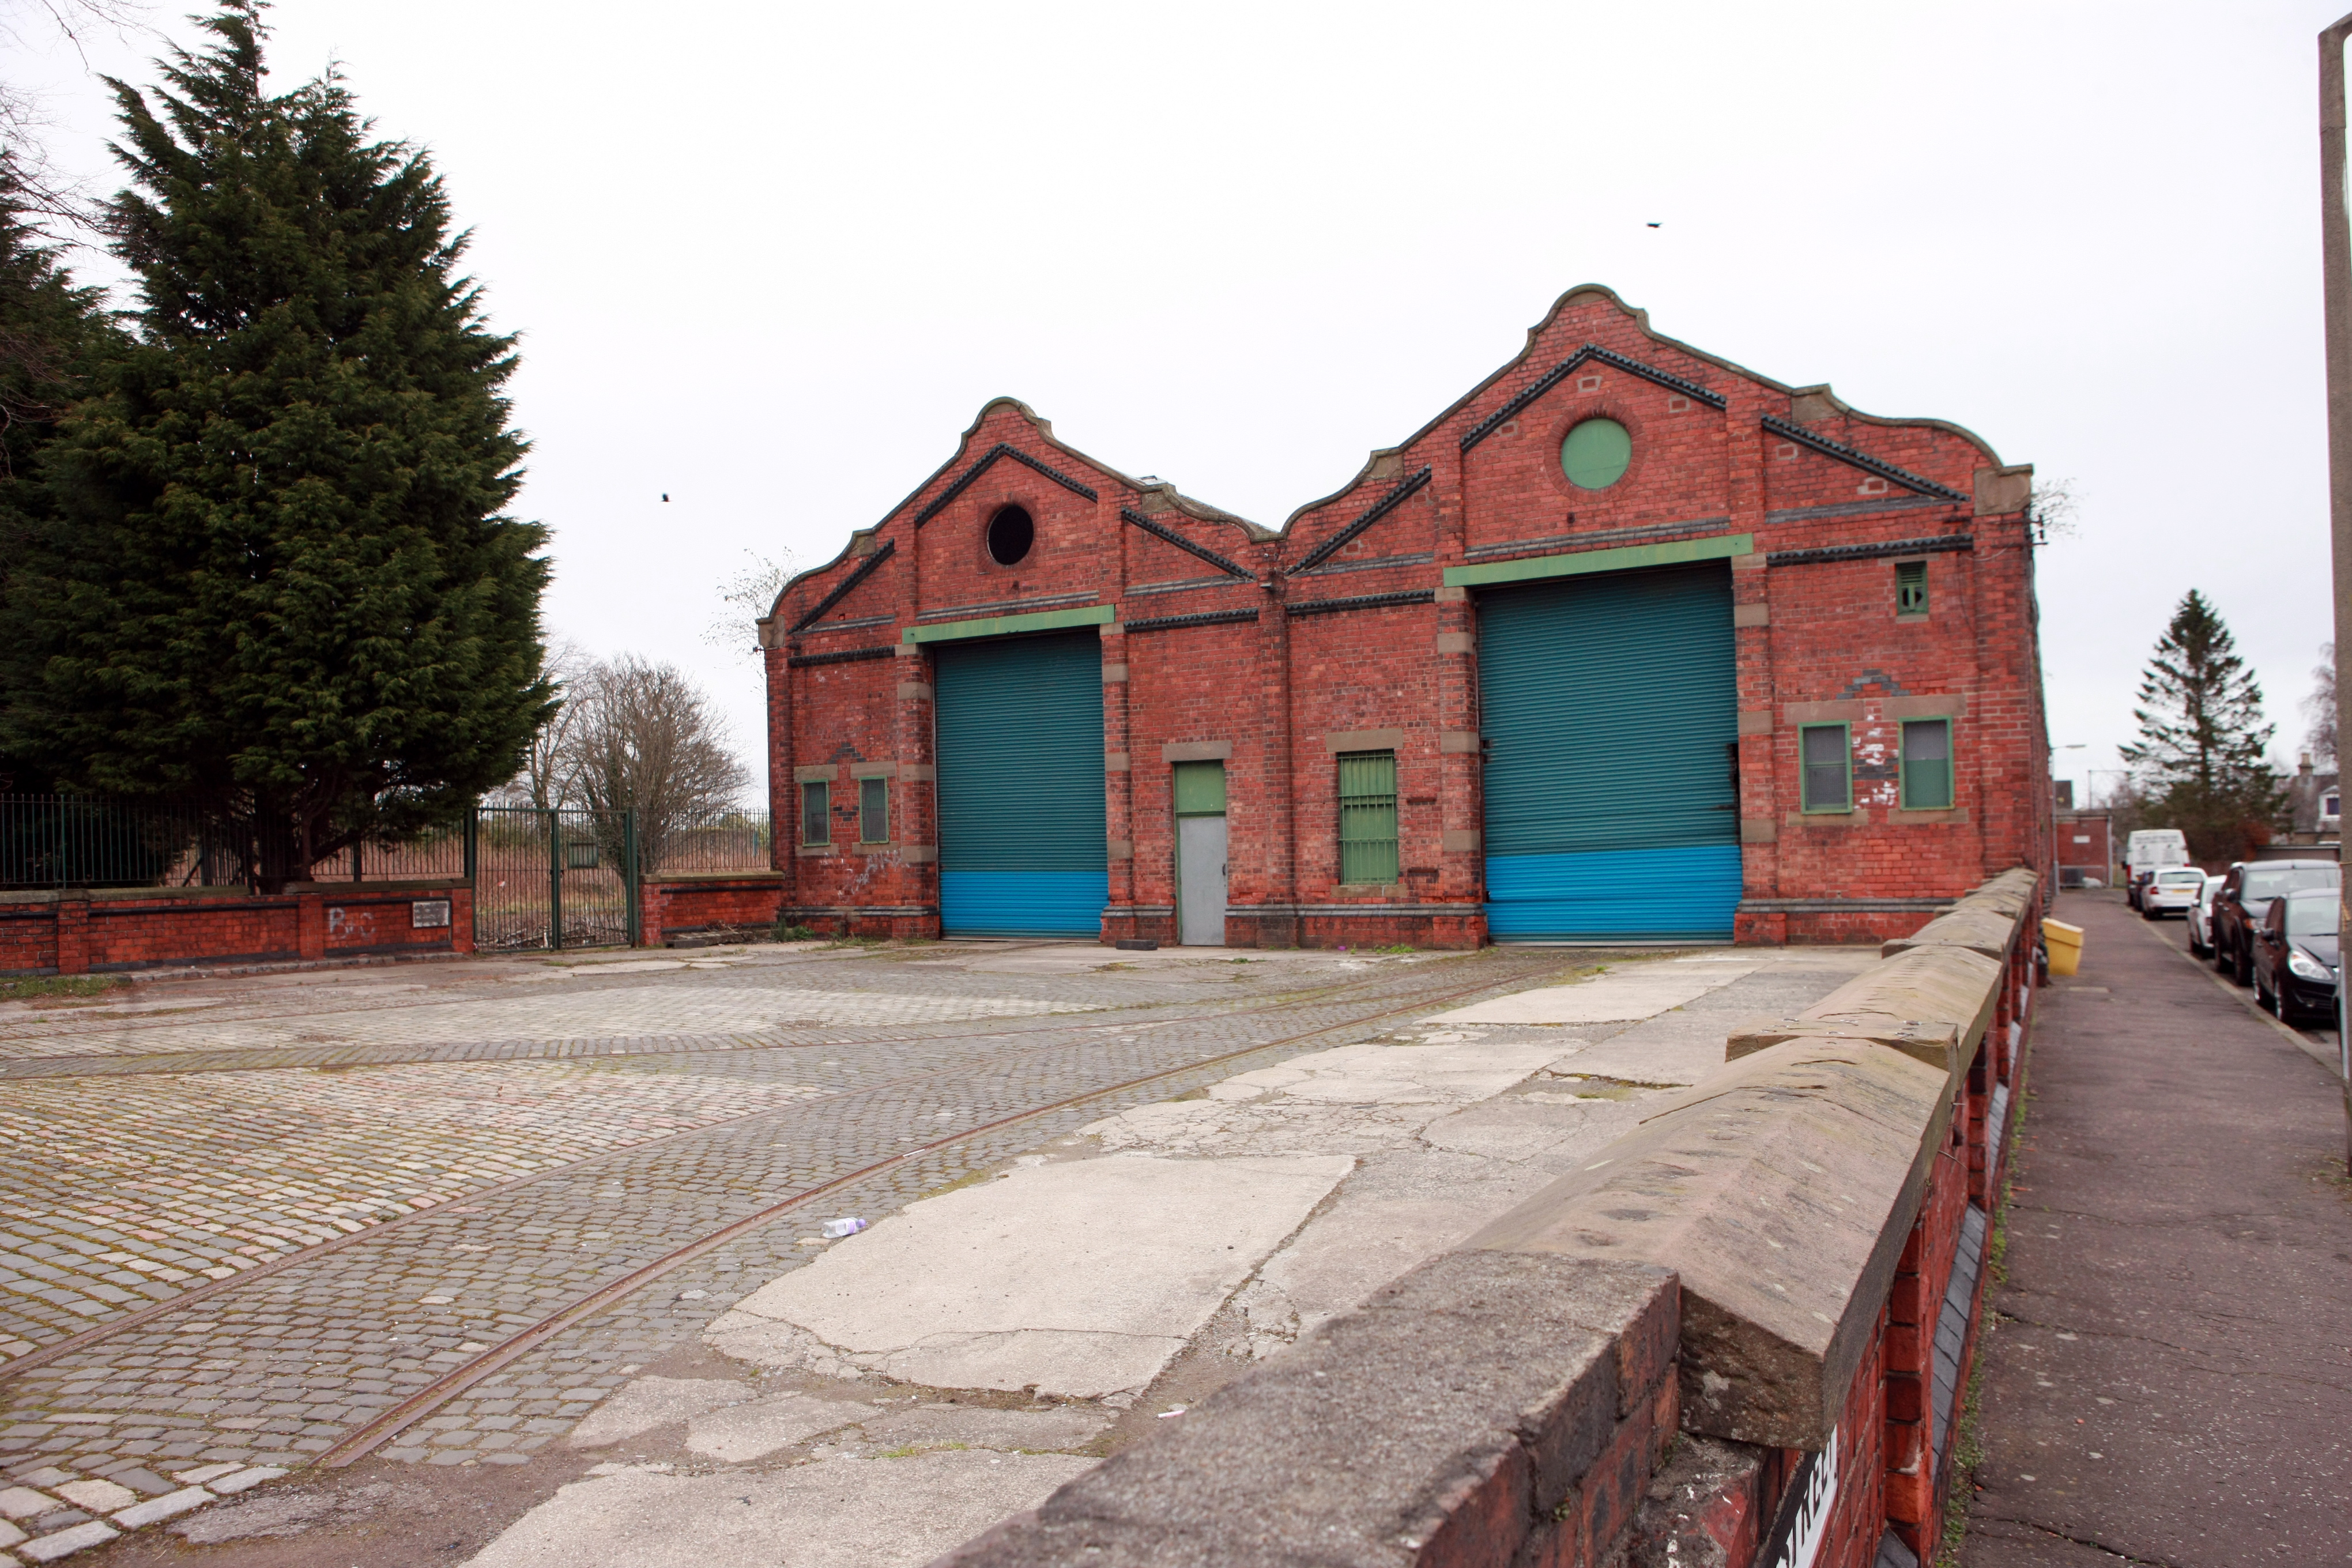 The Maryfield tram depot.